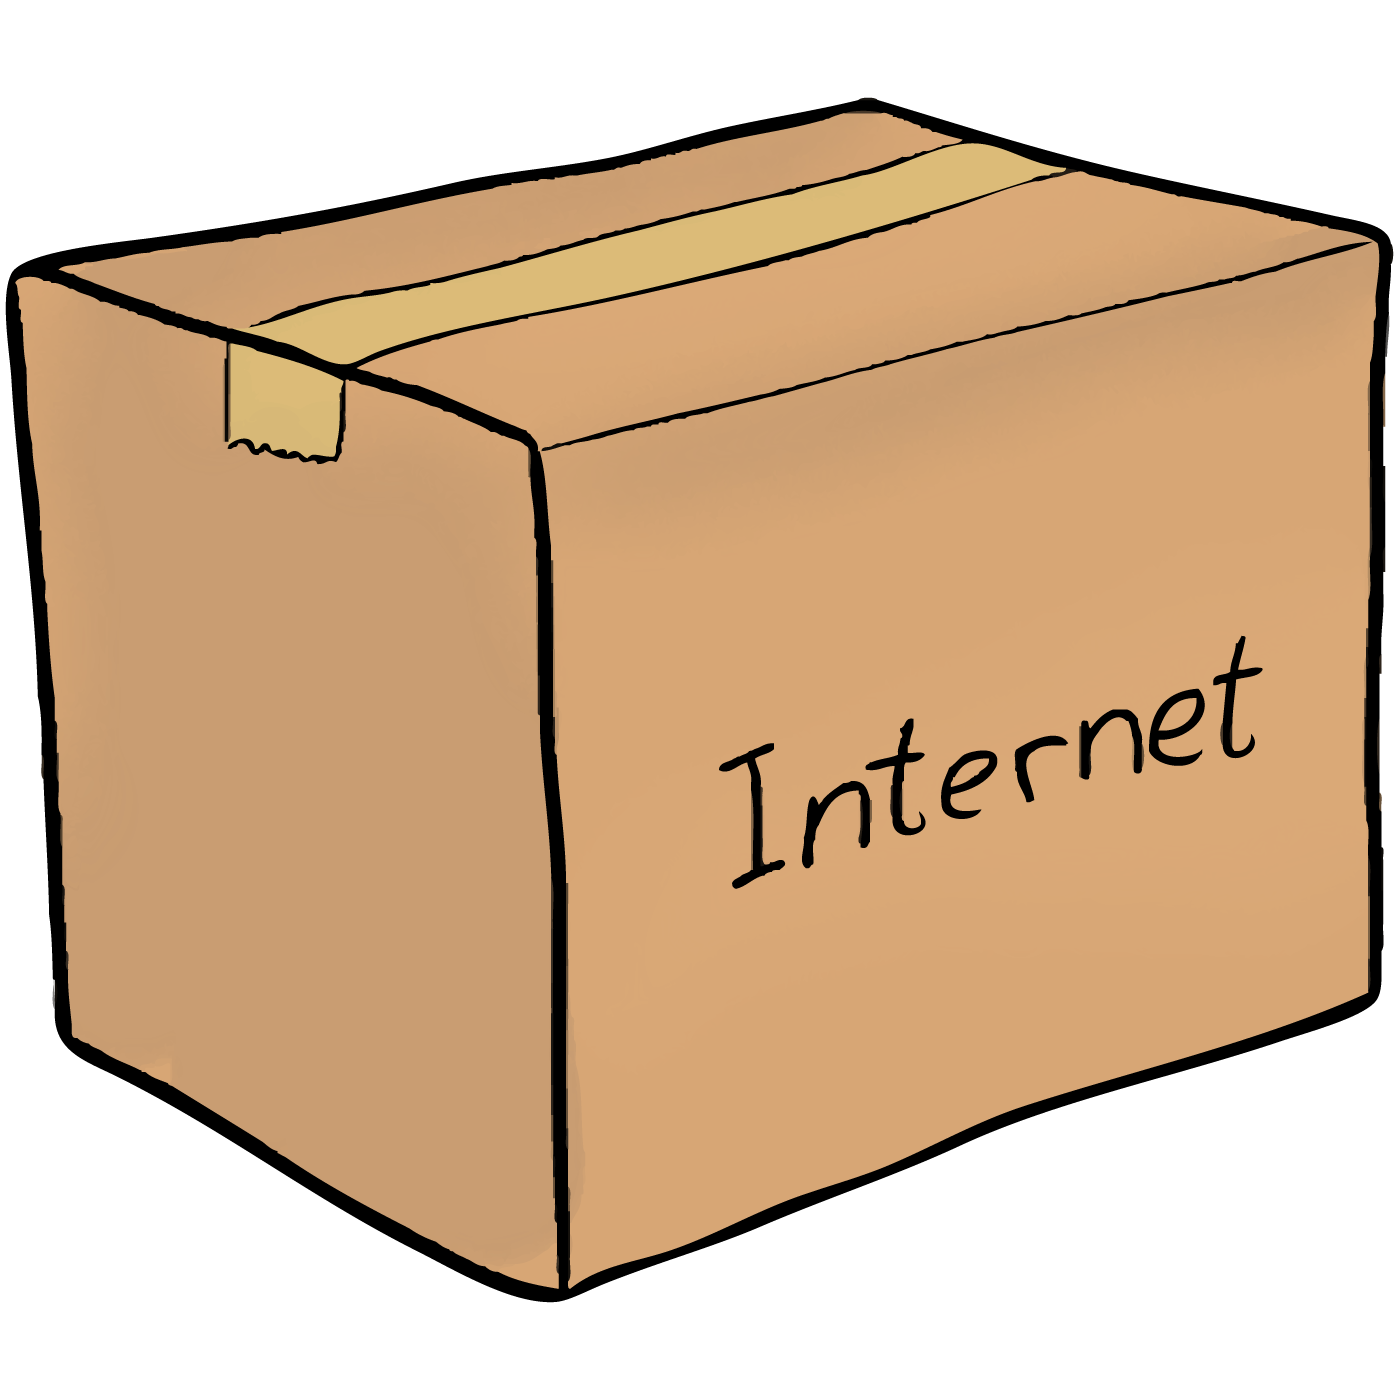 Internet Box.png